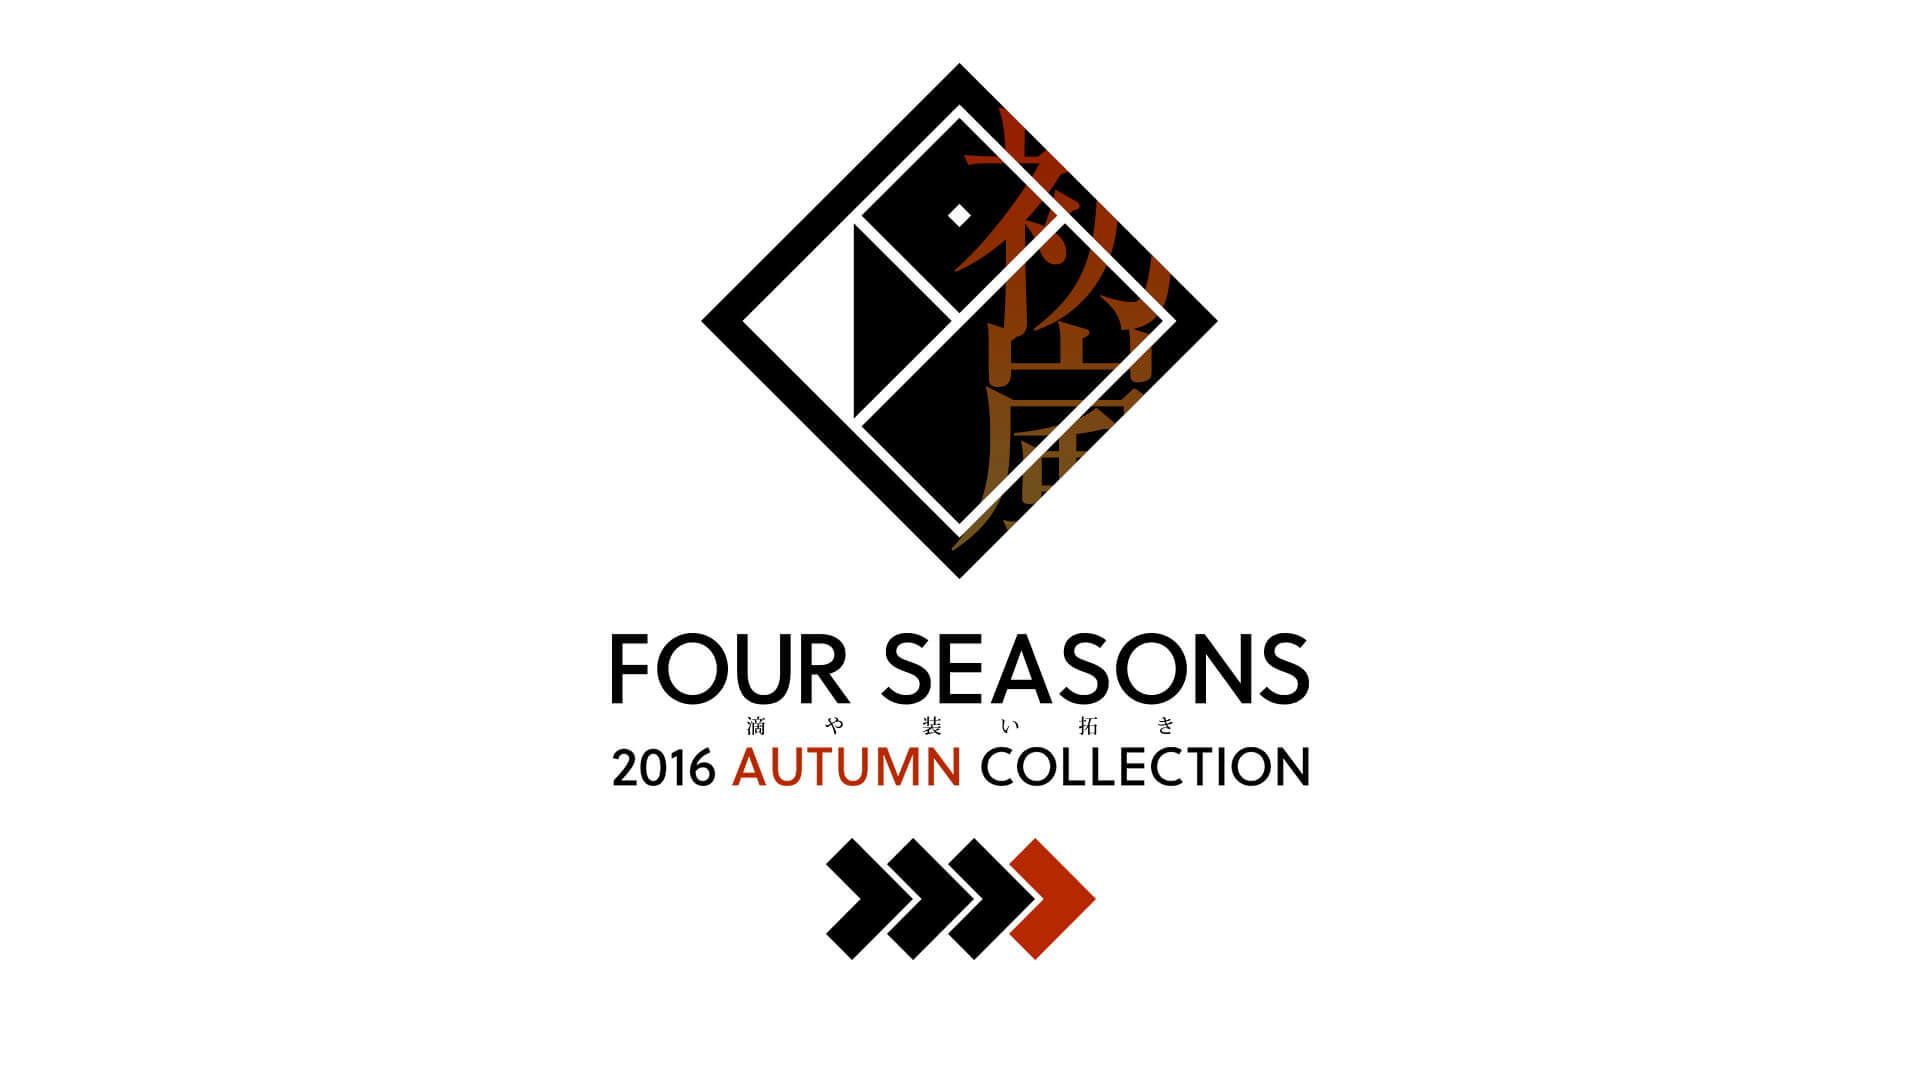 [PHOTO:FOUR SEASONS 2016 AUTUMN COLLECTION]